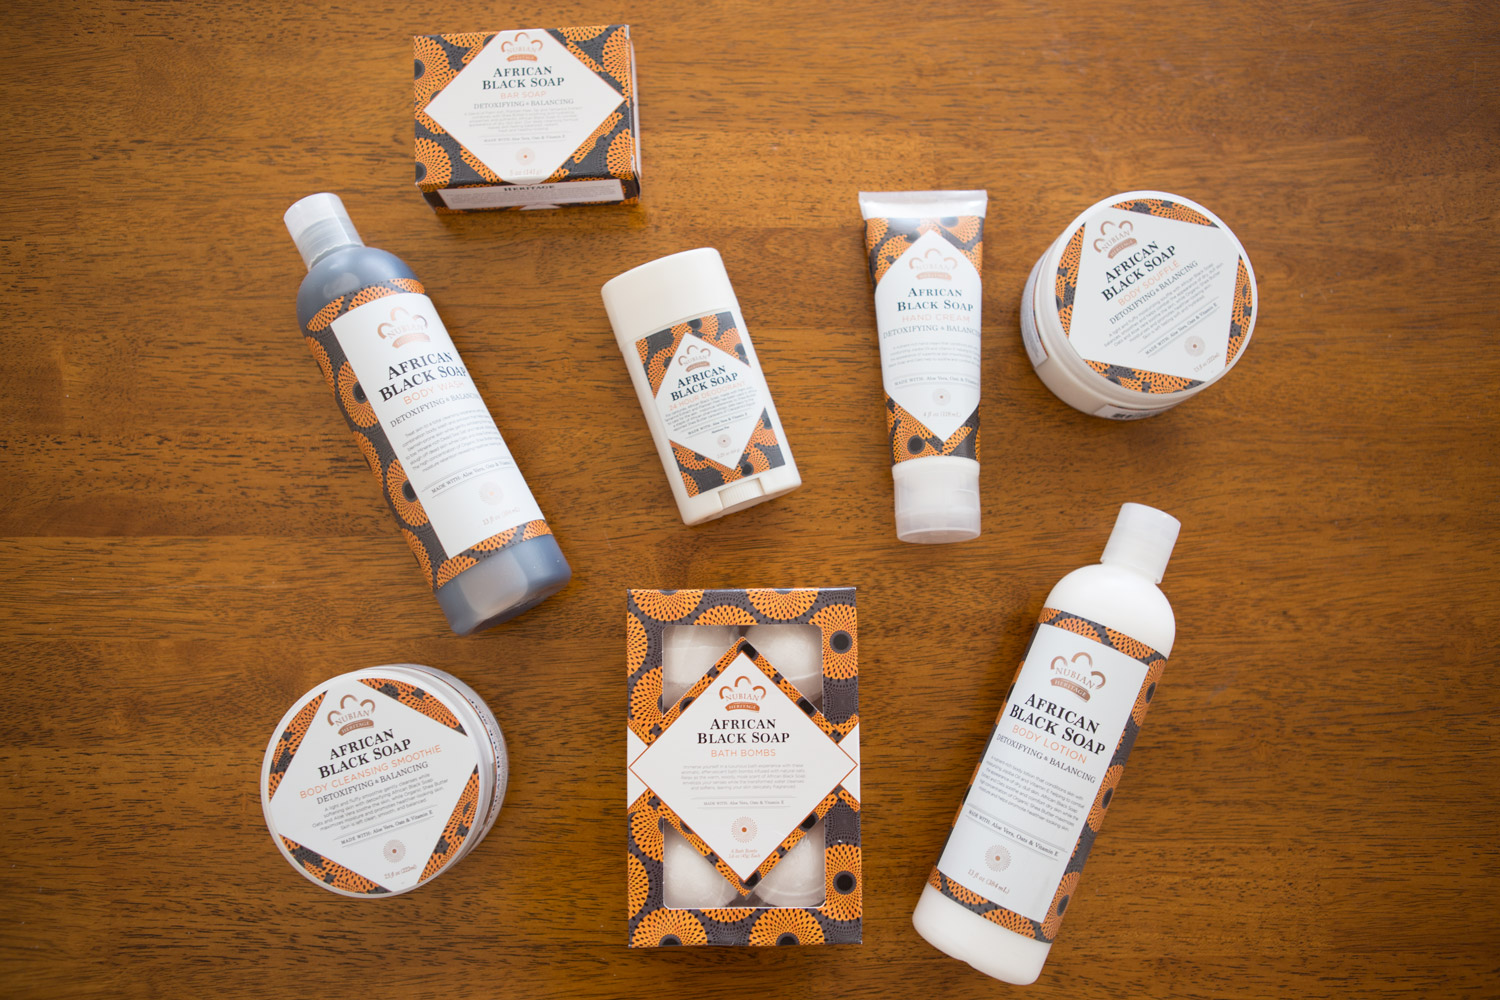 African Black Soap line by Nubian Heritage